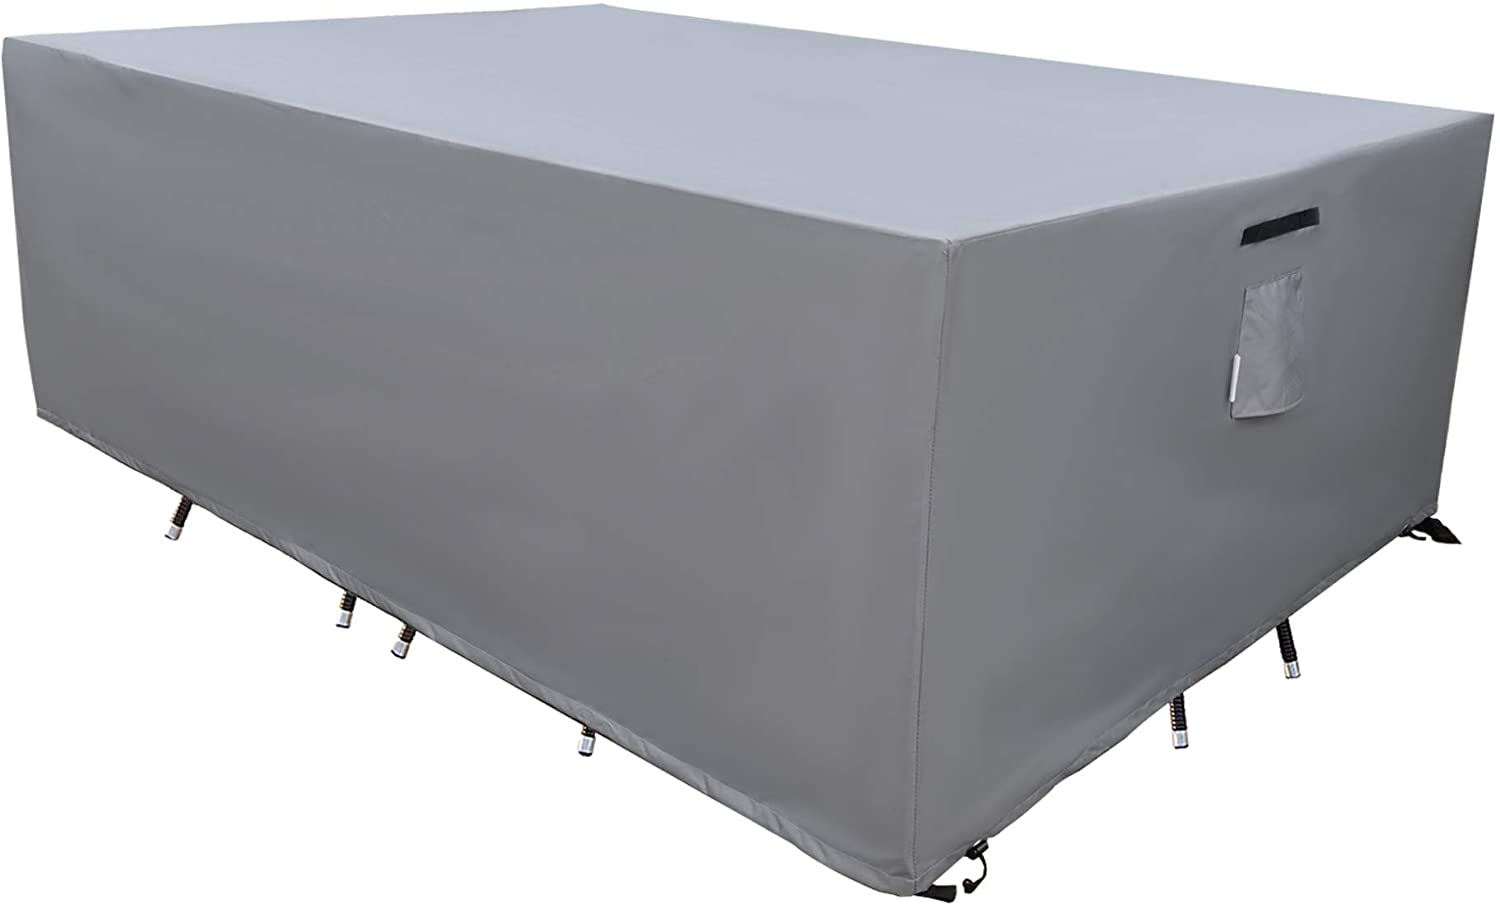 SERHOM Patio Furniture Covers, Waterproof Anti-UV 600D Heavy Duty Durable Table Cover for Outdoor Dining Table, Grey, 84x44x29